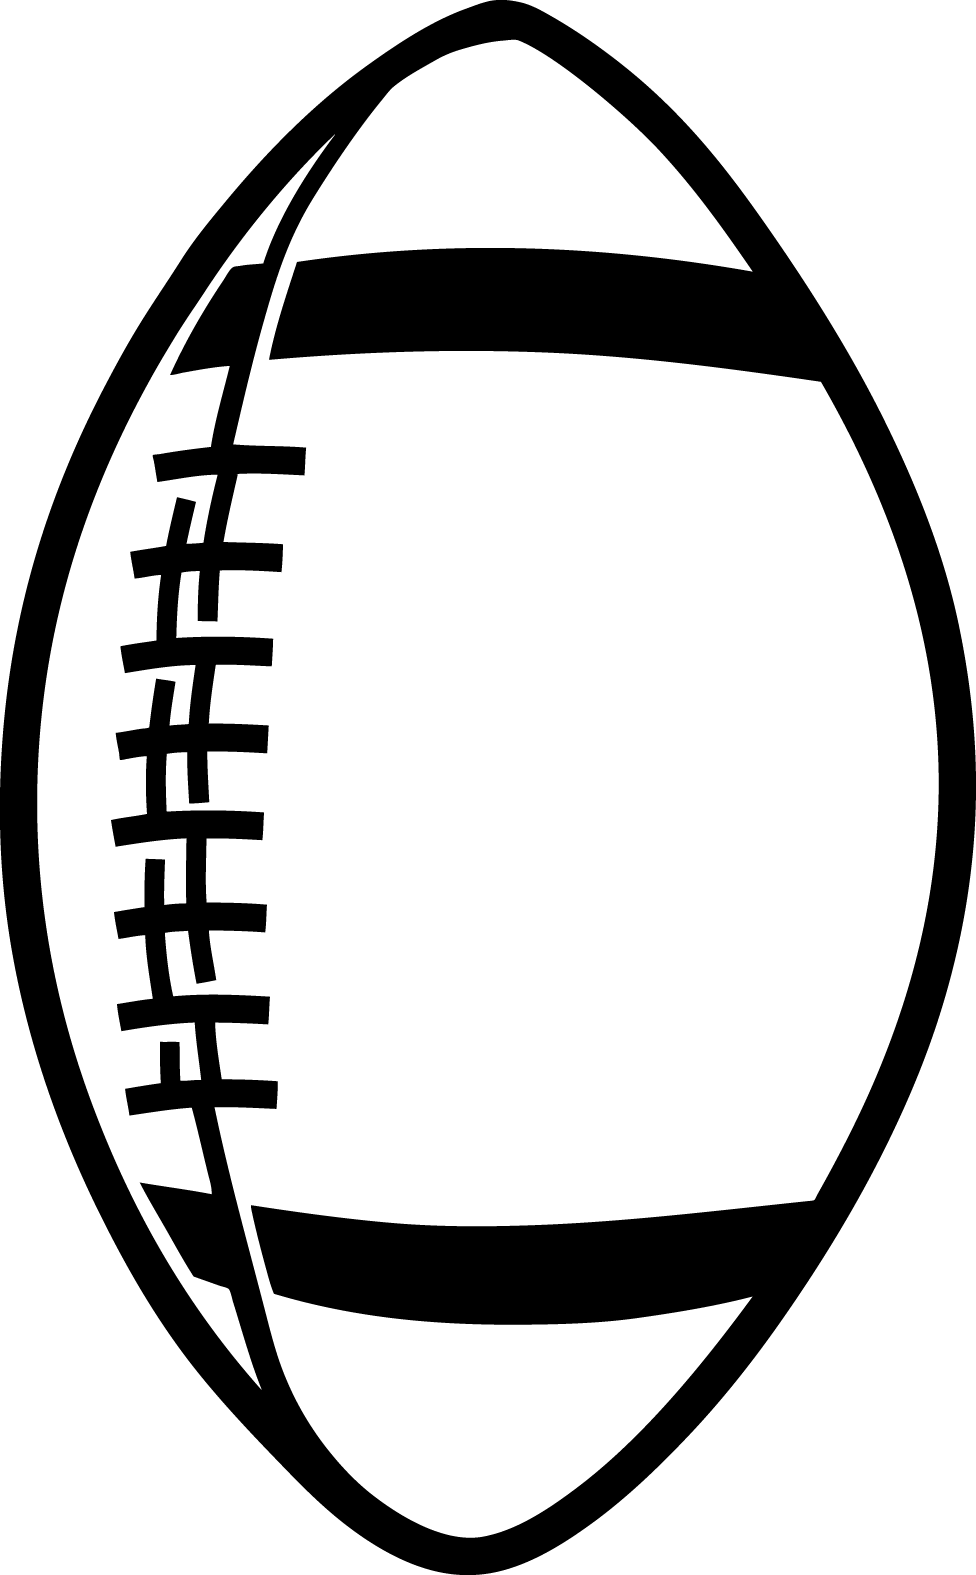 Football outline clipart 5